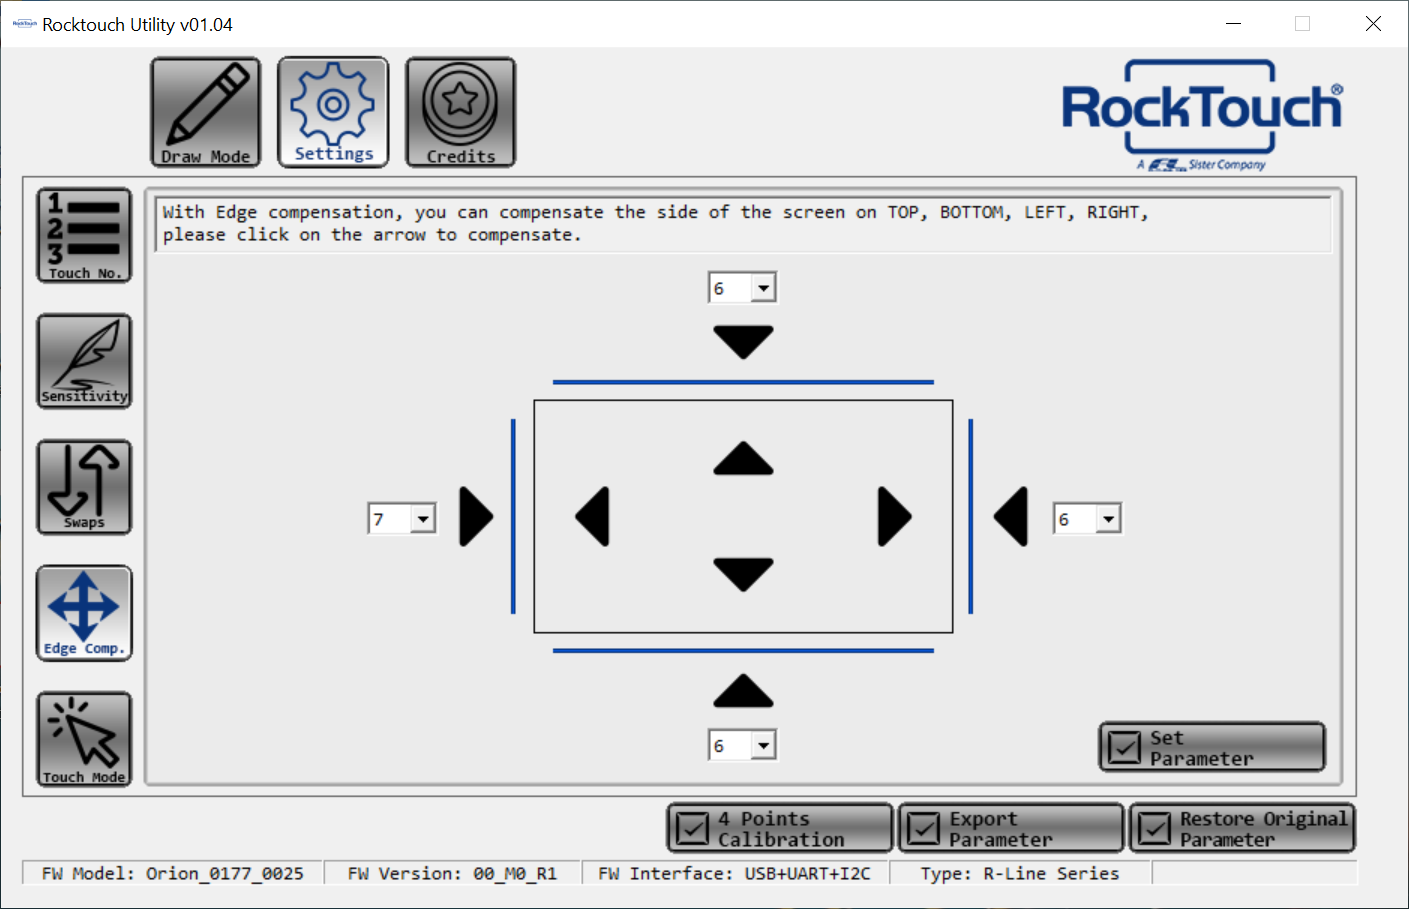 WYSIWYG - Rocktouch utility ver 01.04 Edge compensation.png